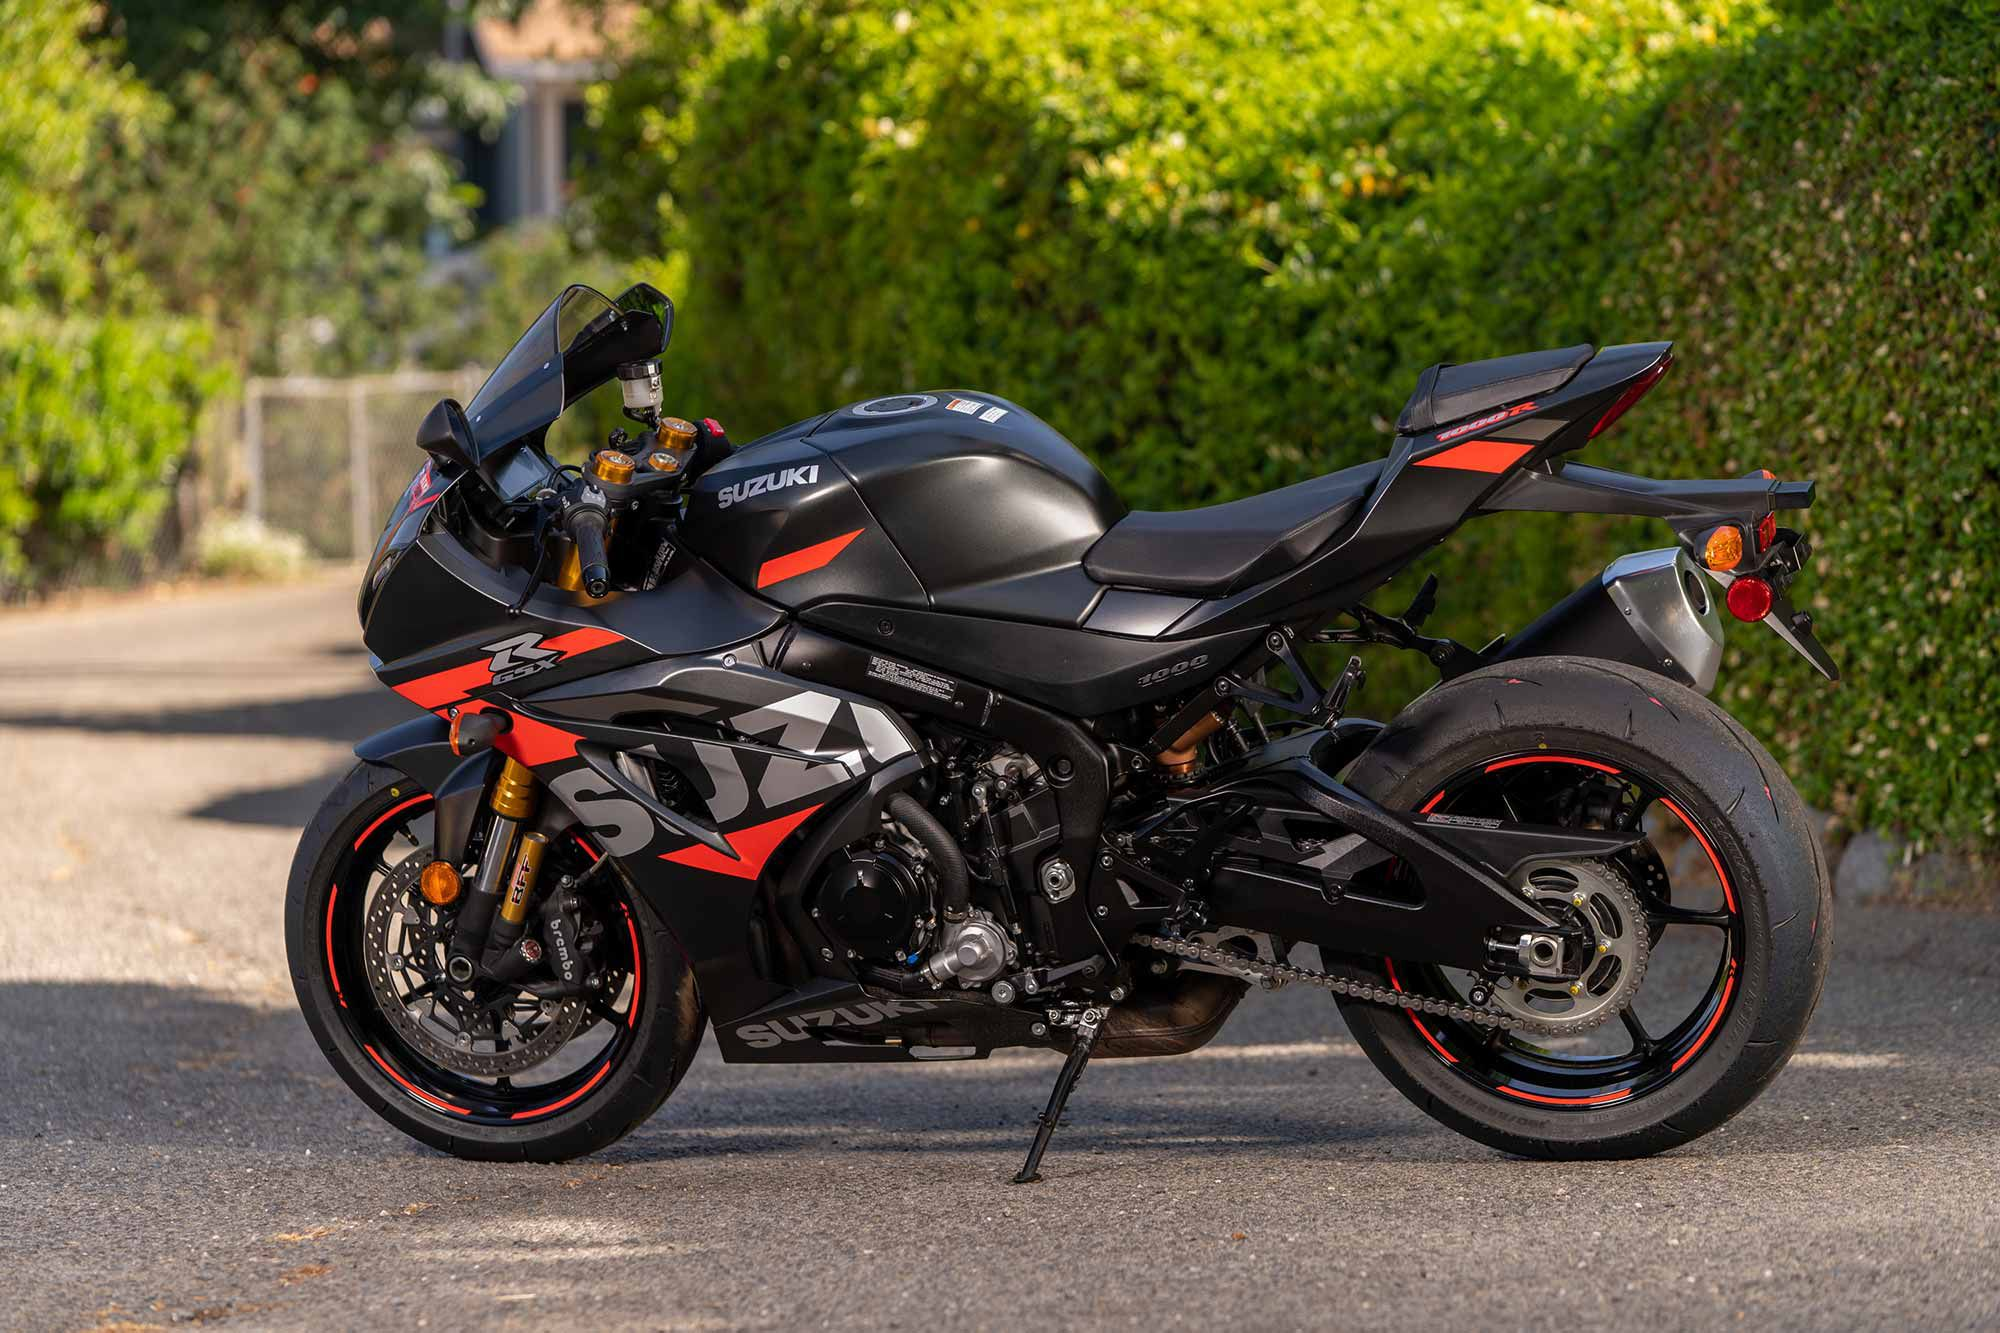 The 2021 GSX-R1000R commands an additional $1,950 versus the base GSX-R1000. For that upcharge you get higher specification suspension, an bi-directional quickshifter, launch control, steel-braided front brake lines, and cornering ABS.